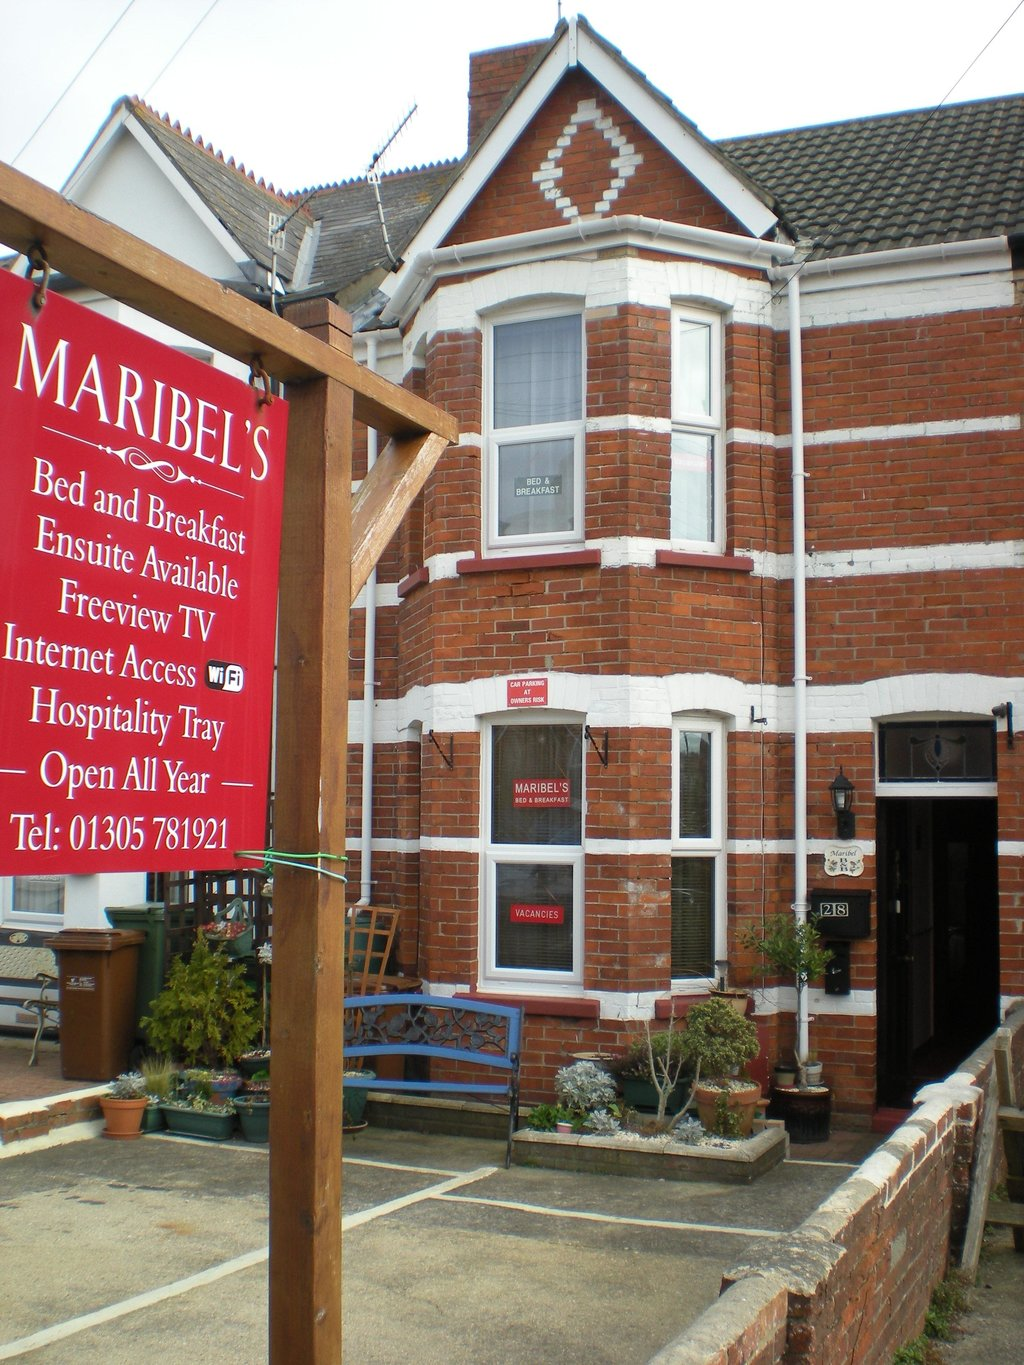 Maribel's Bed & Breakfast